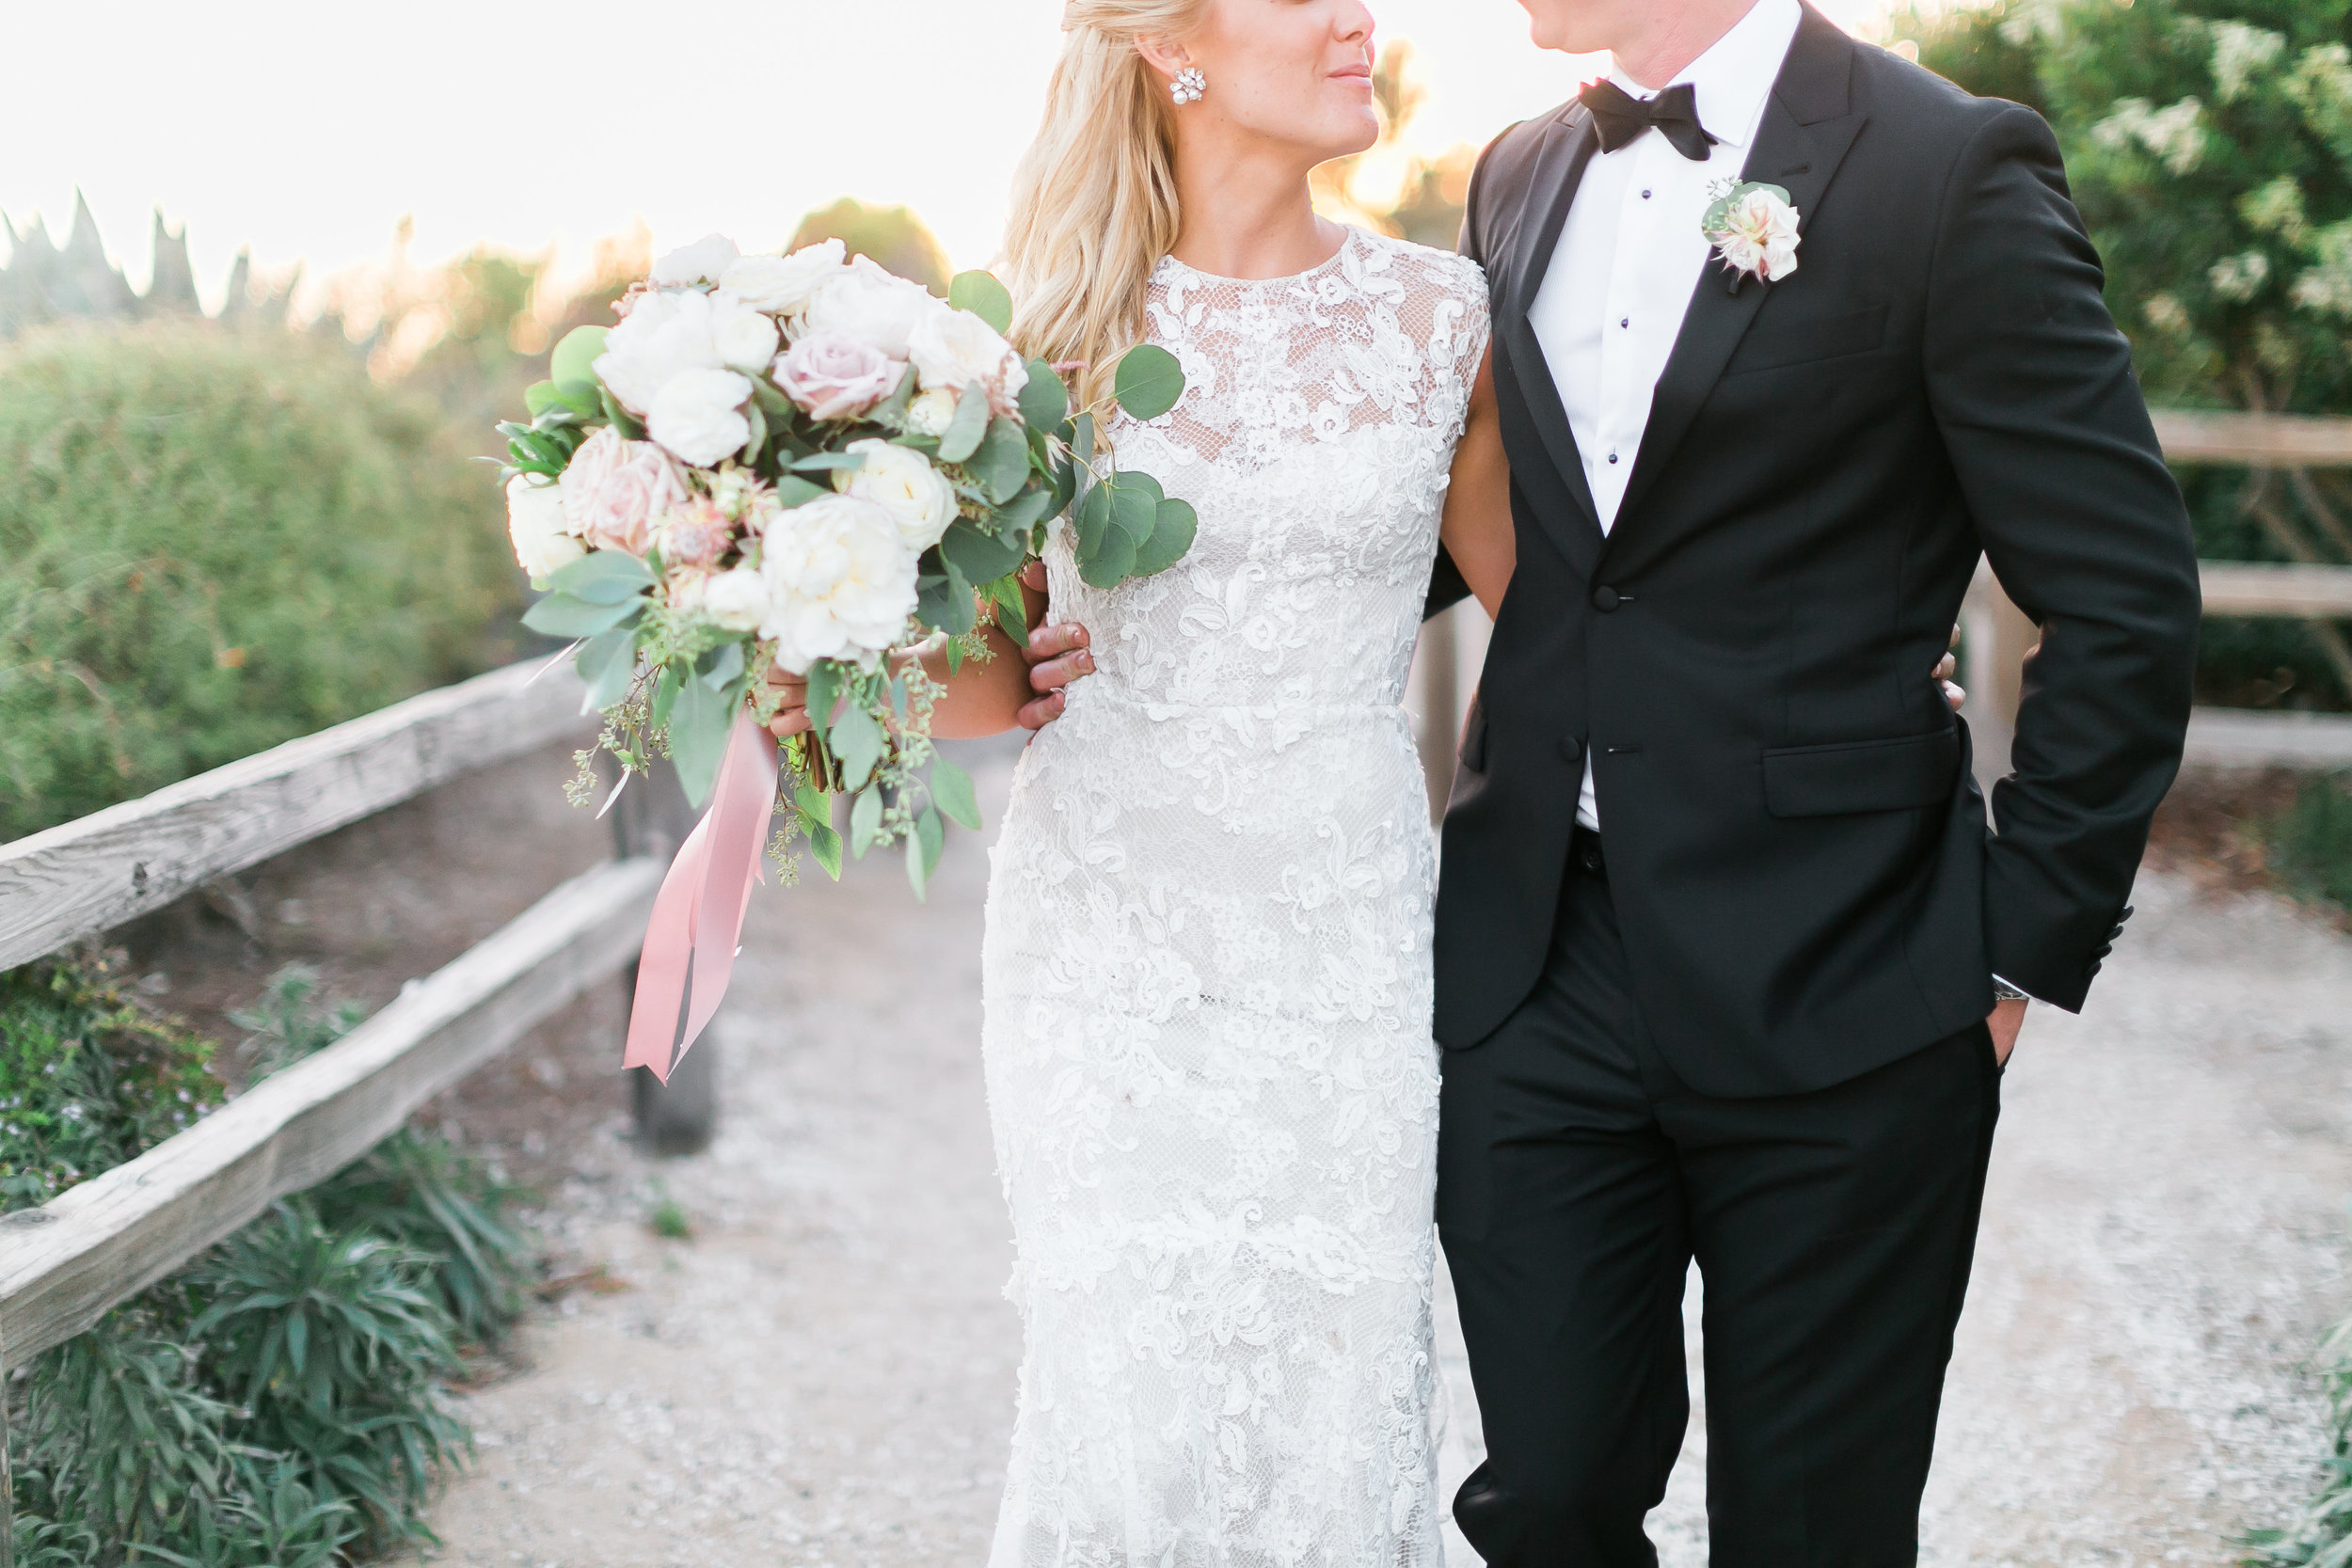 Classic timeless wedding at the Ritz Carlton Bacara Santa Barbara.   CREDITS:  Destination Wedding Planner  ANDREA EPPOLITO EVENTS  · Images by  J.ANNE P  HOTOGRAPHY  · Video  HOO FILMS  · Venue Ritz Carlton Bacara Santa Barbara ·Gown  MONIQUE LHULLIER ·Bridesmaids Dresses  SHOW ME YOUR MUMU ·Stationery  SHE PAPERIE ·Bride's Shoes  BADGLEY MISCHKA ·Hair and Makeup  TEAM HAIR AND MAKEUP · Floral  BLUE MAGNOLIA ·Linen  LA TAVOLA ·Decor Rentals  TENT MERCHANT ·Calligraphy  EBB ·Lighting  FIVE STAR AV ·Ice Cream Station  MCCONNELL'S ICE CREAM